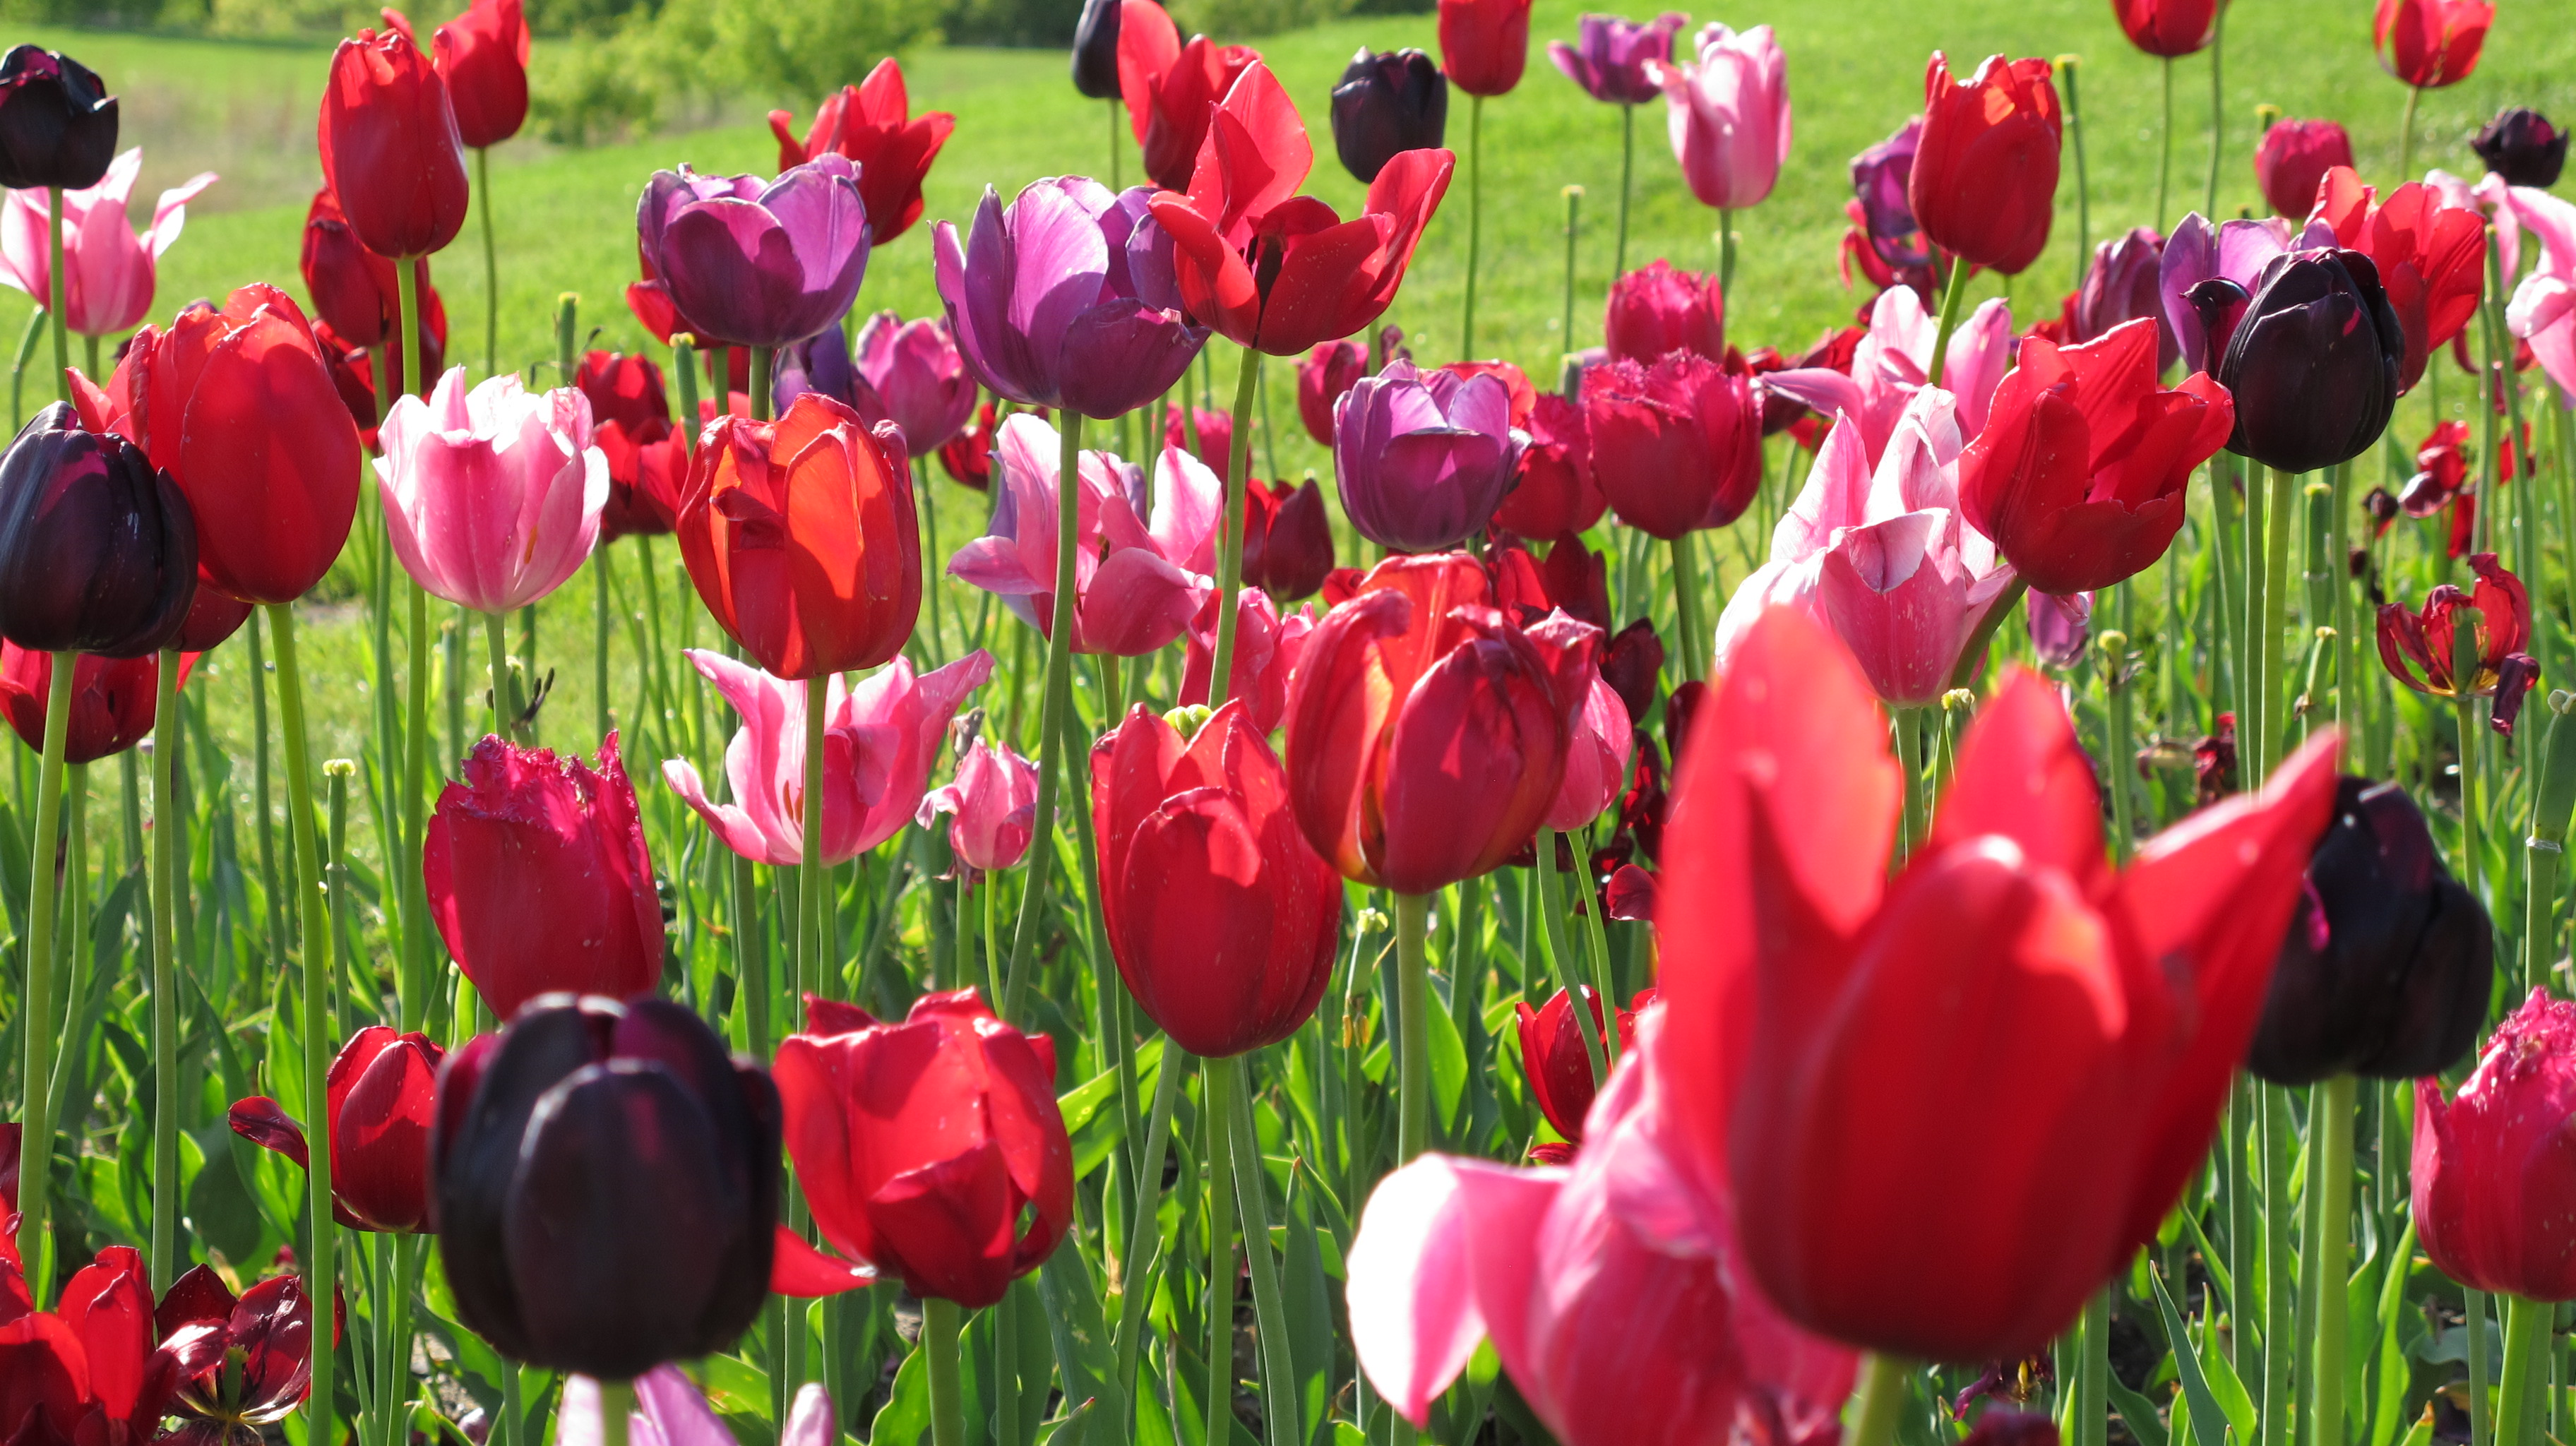 tulipmania the introduction of tulips to the netherlands in the 1500s 1 e s s e n t i a l investment 01 essential investment 10/11/06 2:34 pm page i 2 other economist books guide to analysing companies guide to business modelling.